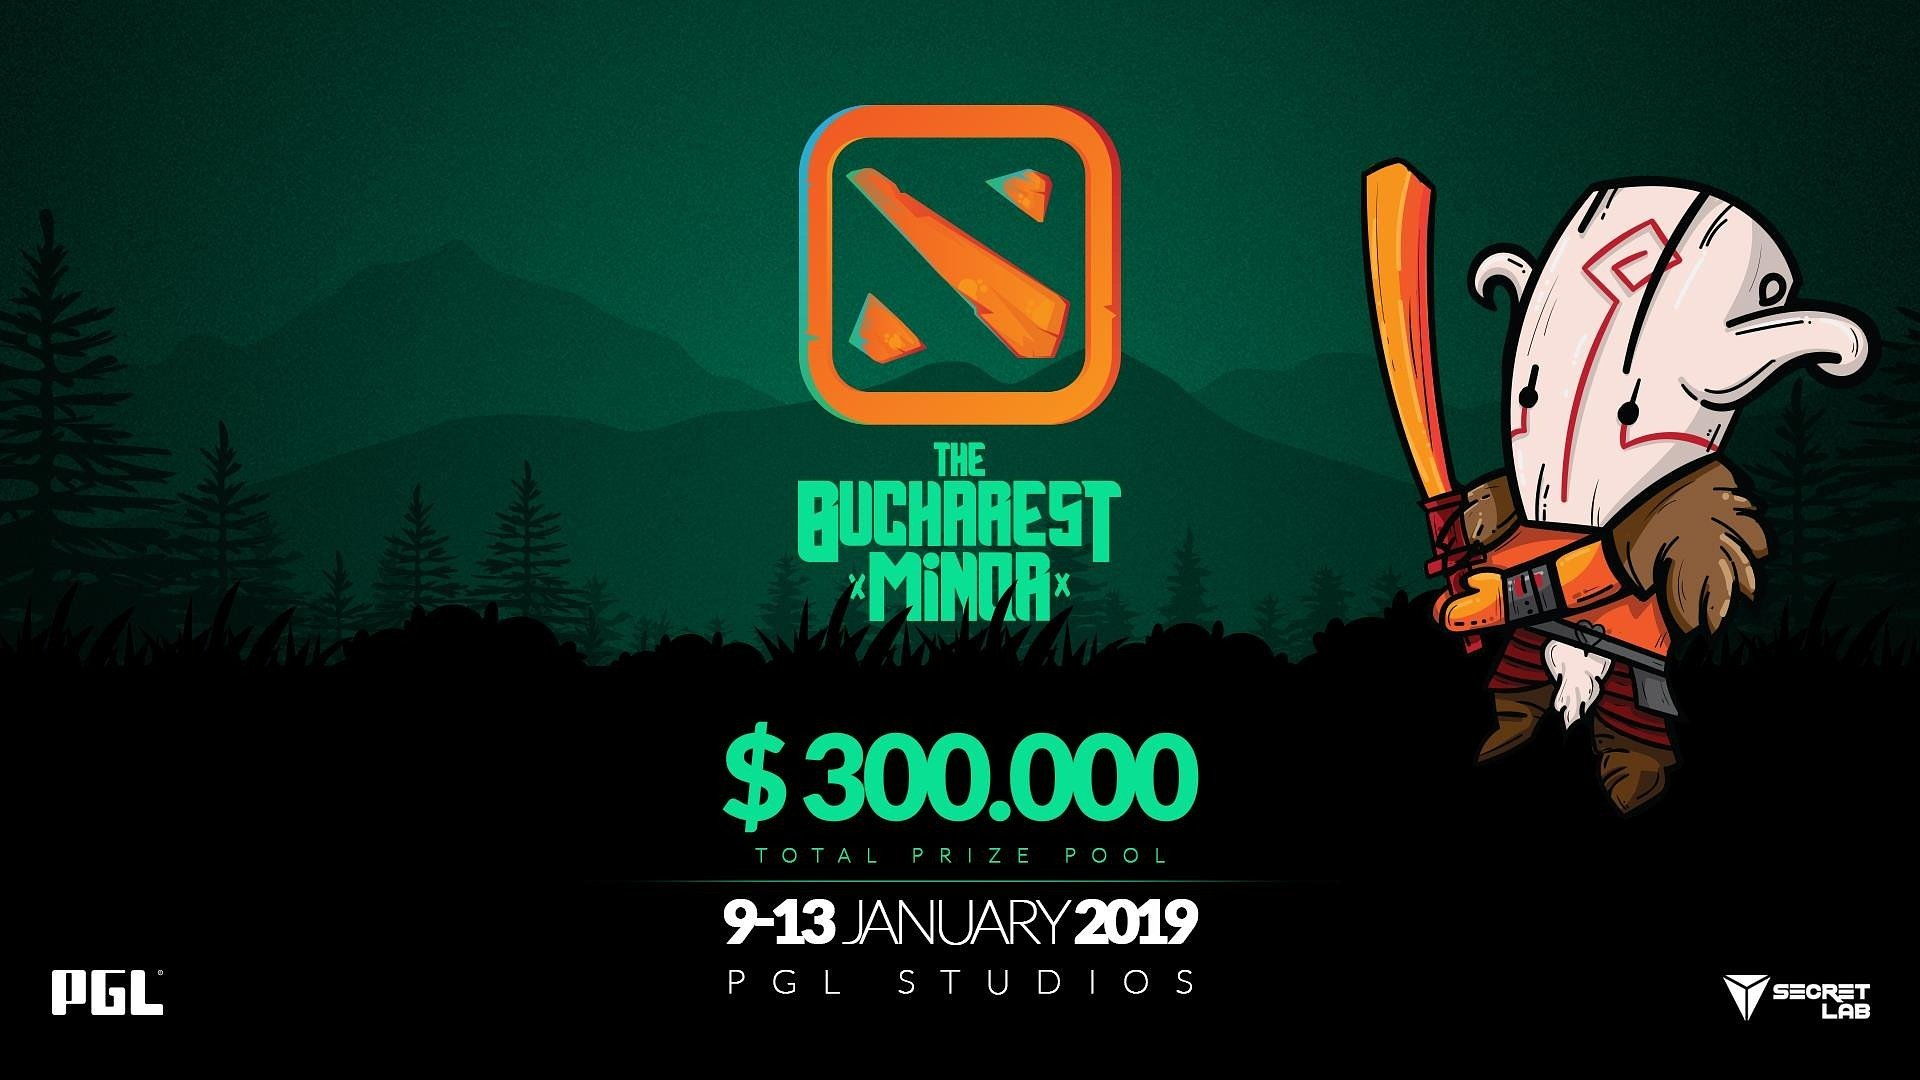 PGL will host The Bucharest Minor in January 2019